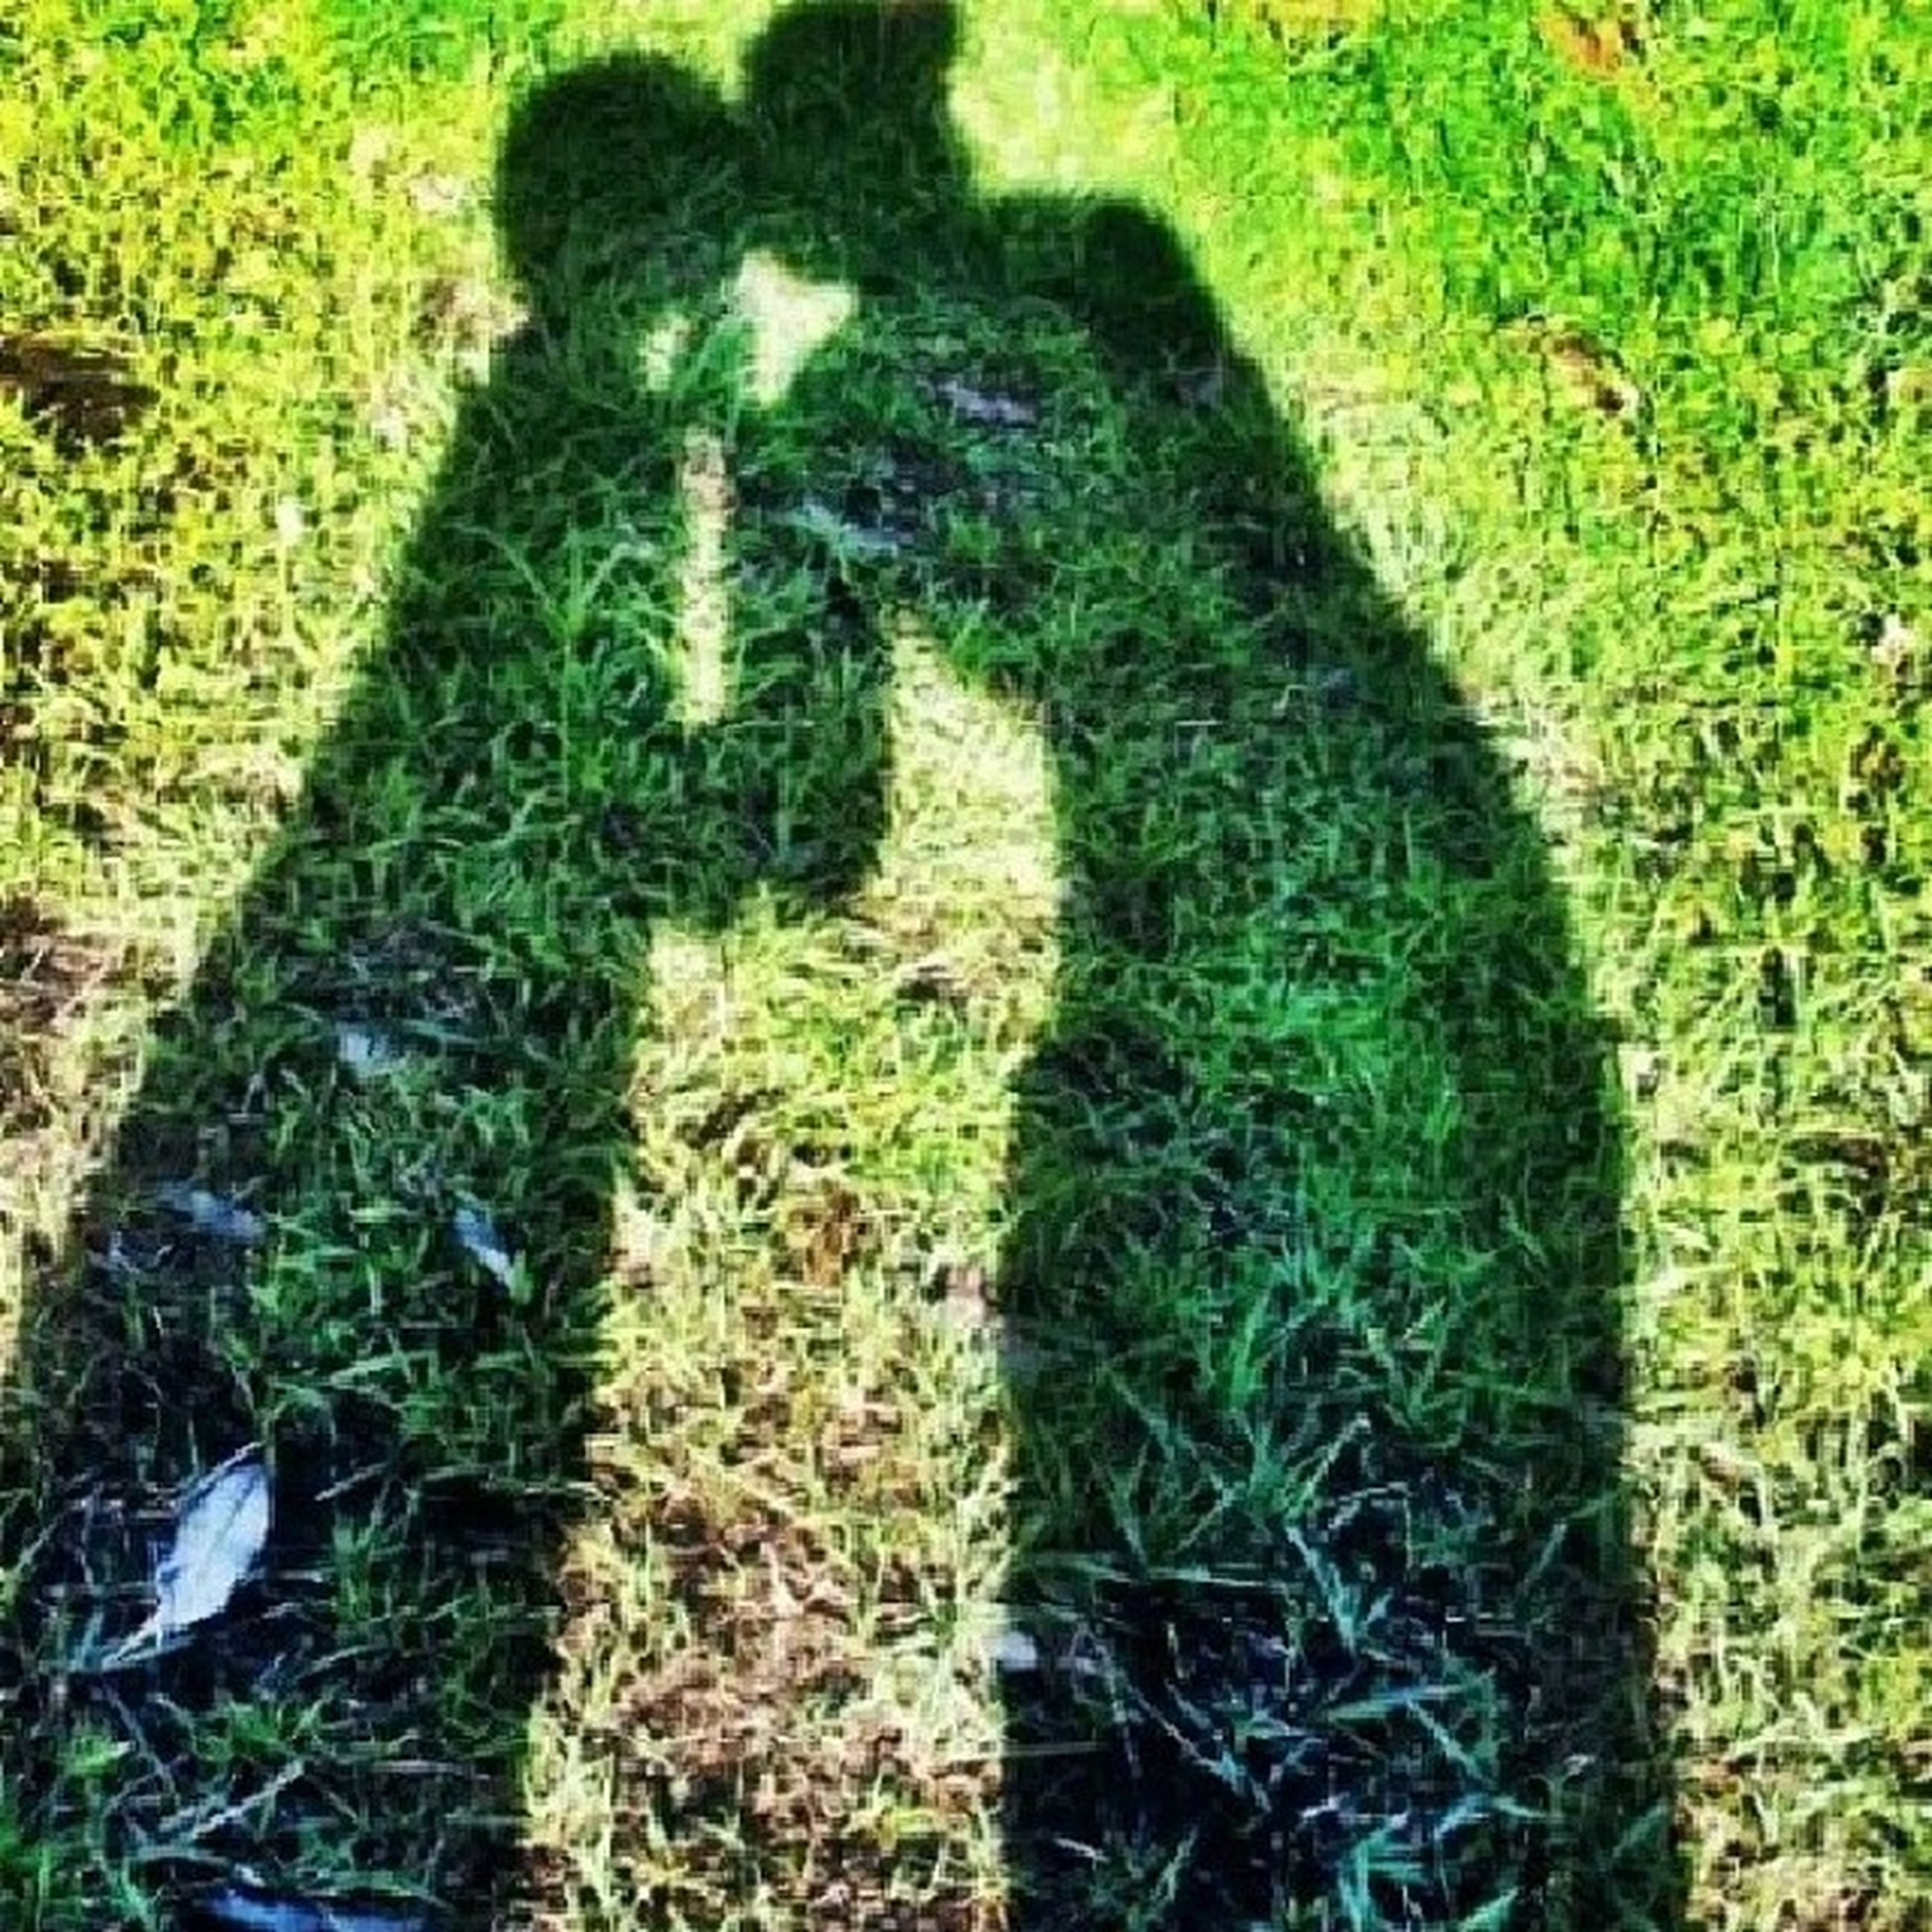 grass, high angle view, shadow, field, focus on shadow, grassy, growth, sunlight, green color, plant, nature, day, lifestyles, outdoors, unrecognizable person, leisure activity, standing, men